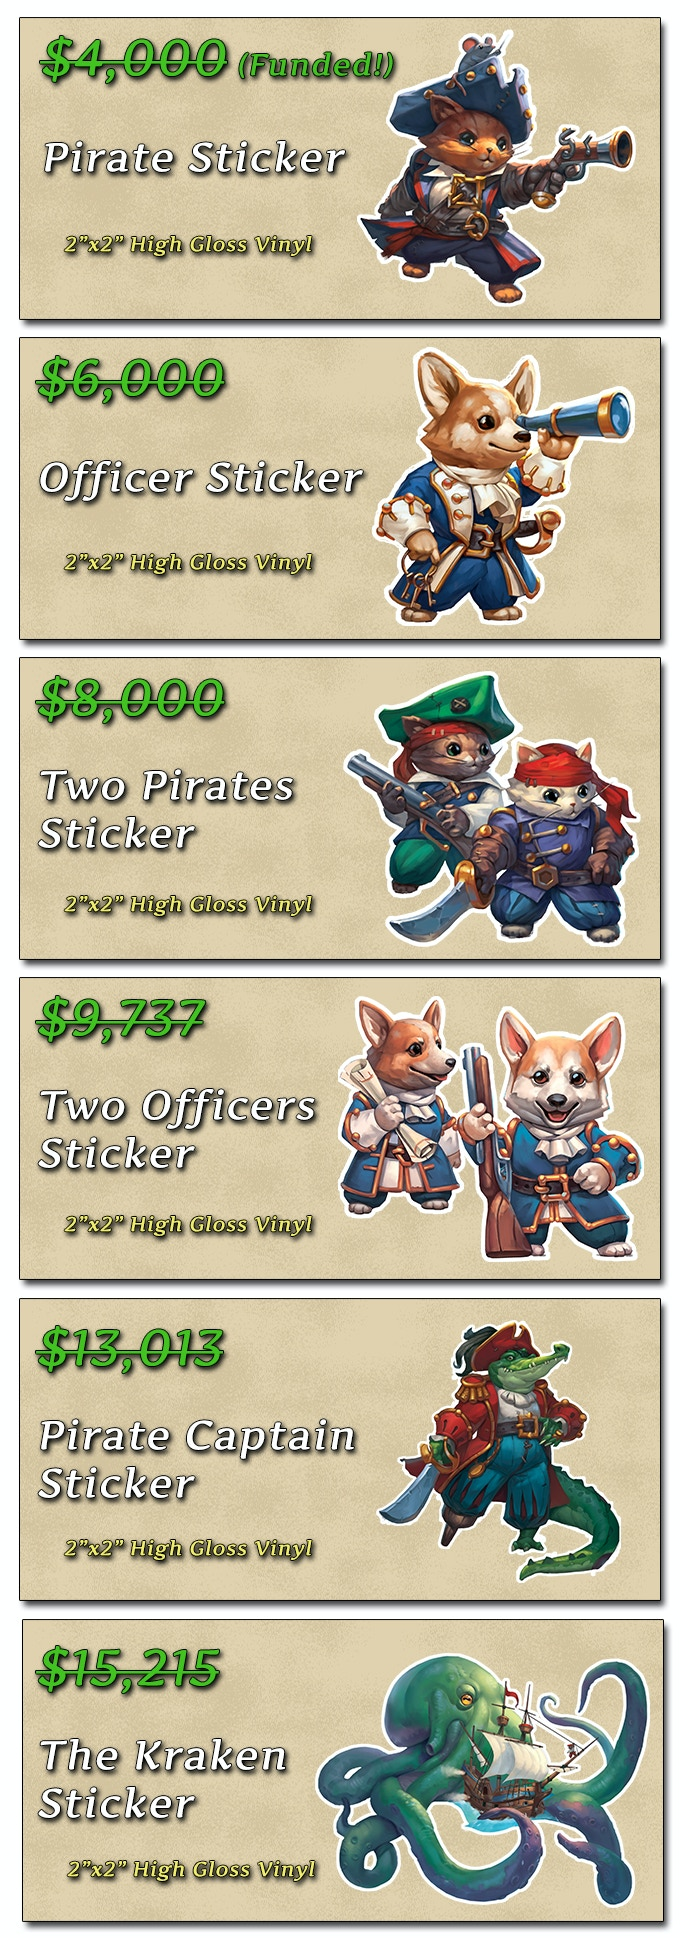 All unlocked stretch goals will be included with every copy of the game!